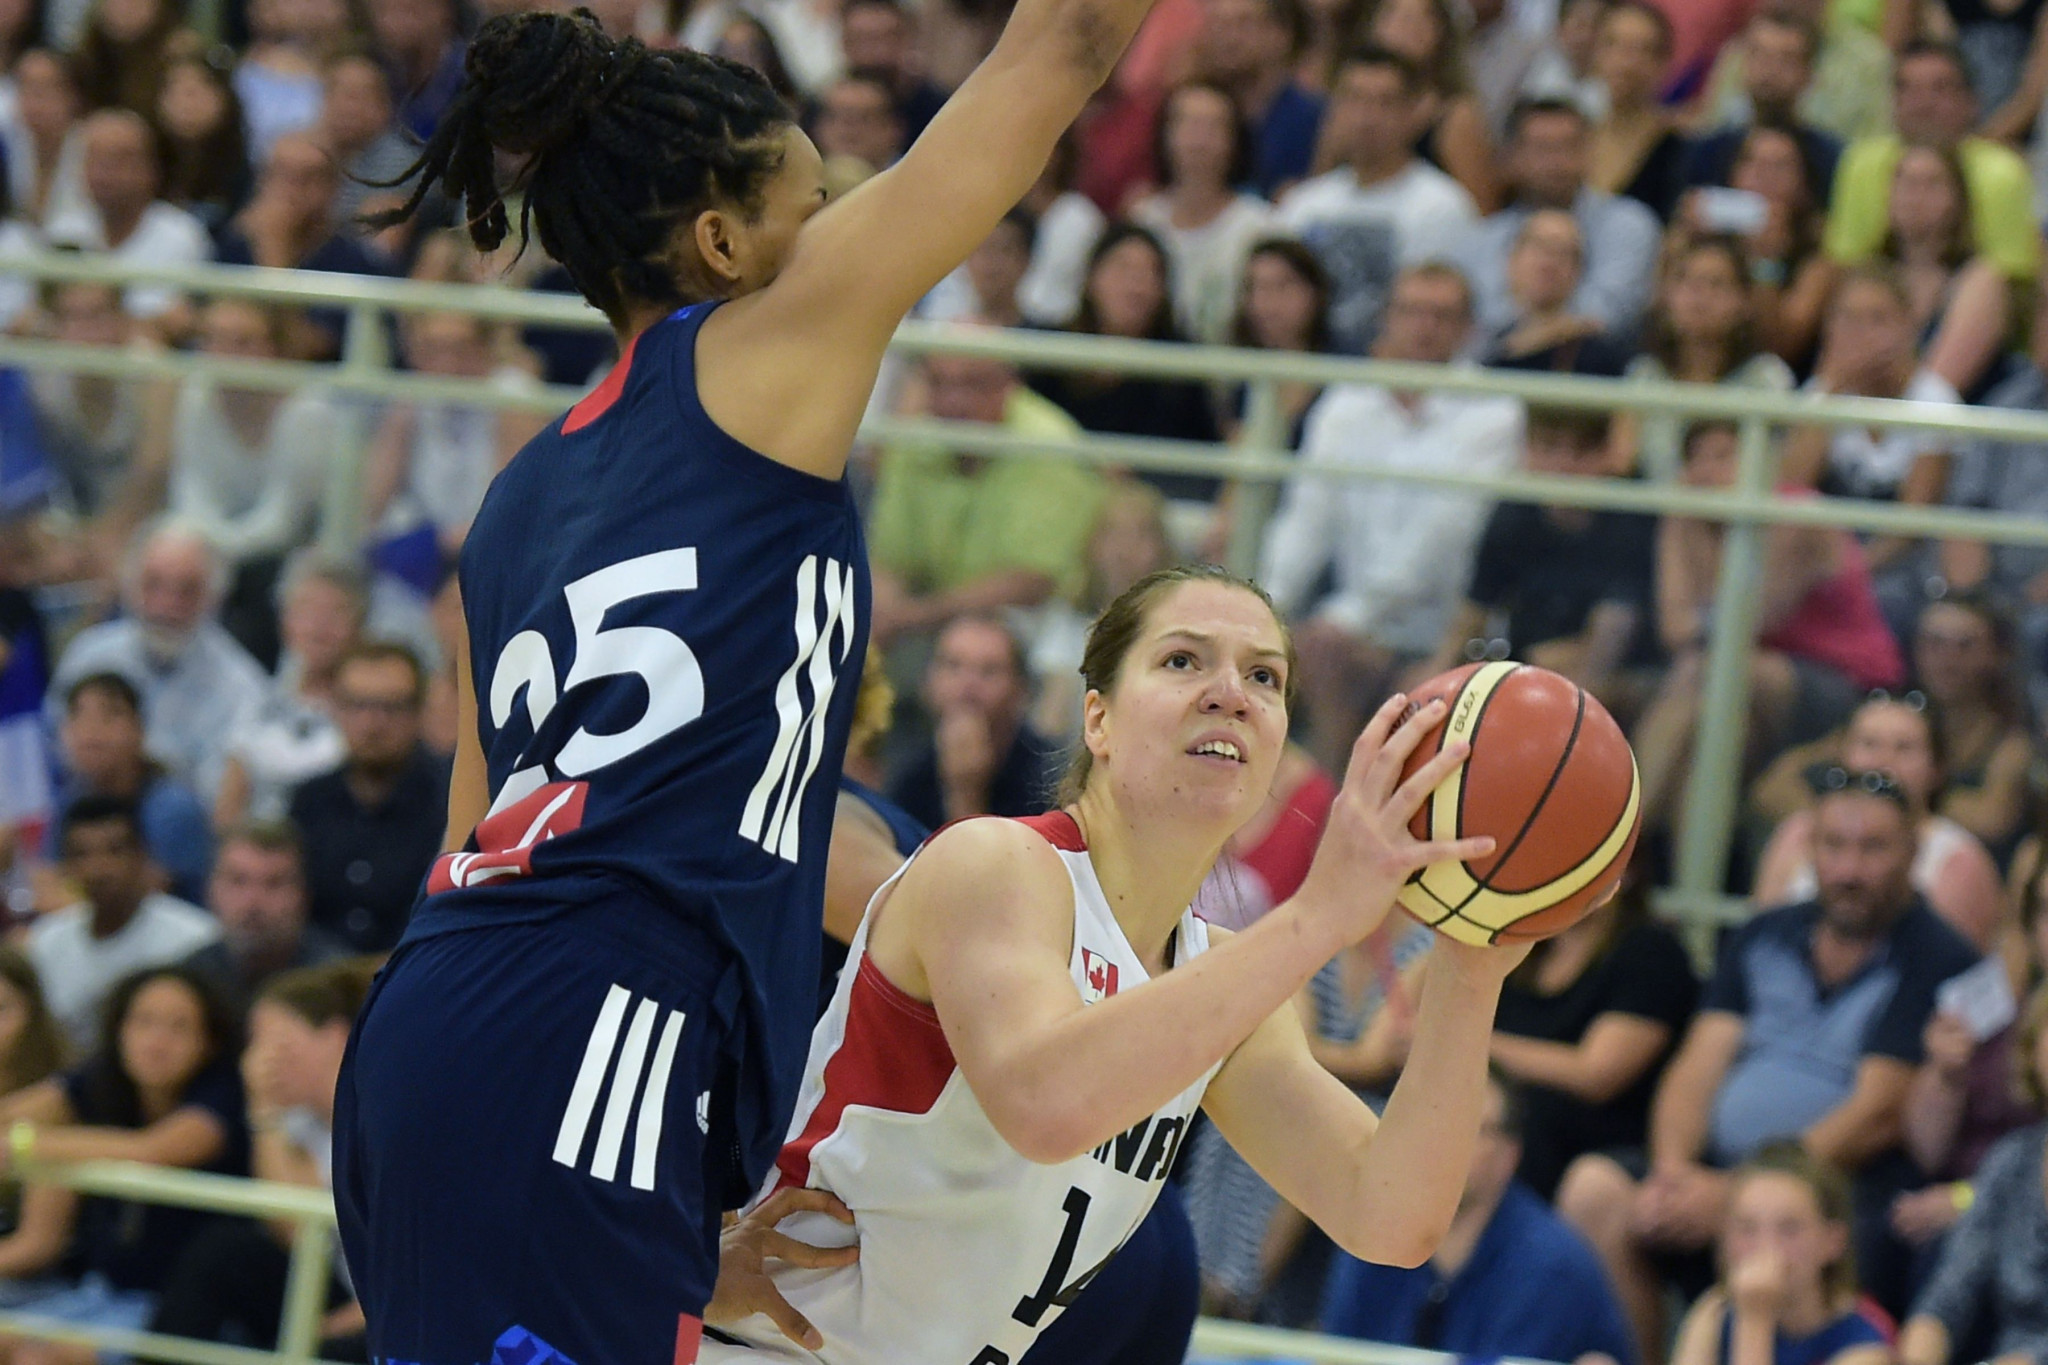 Spain, China and Canada undefeated after first day of FIBA 3x3 Women's Series in Italy